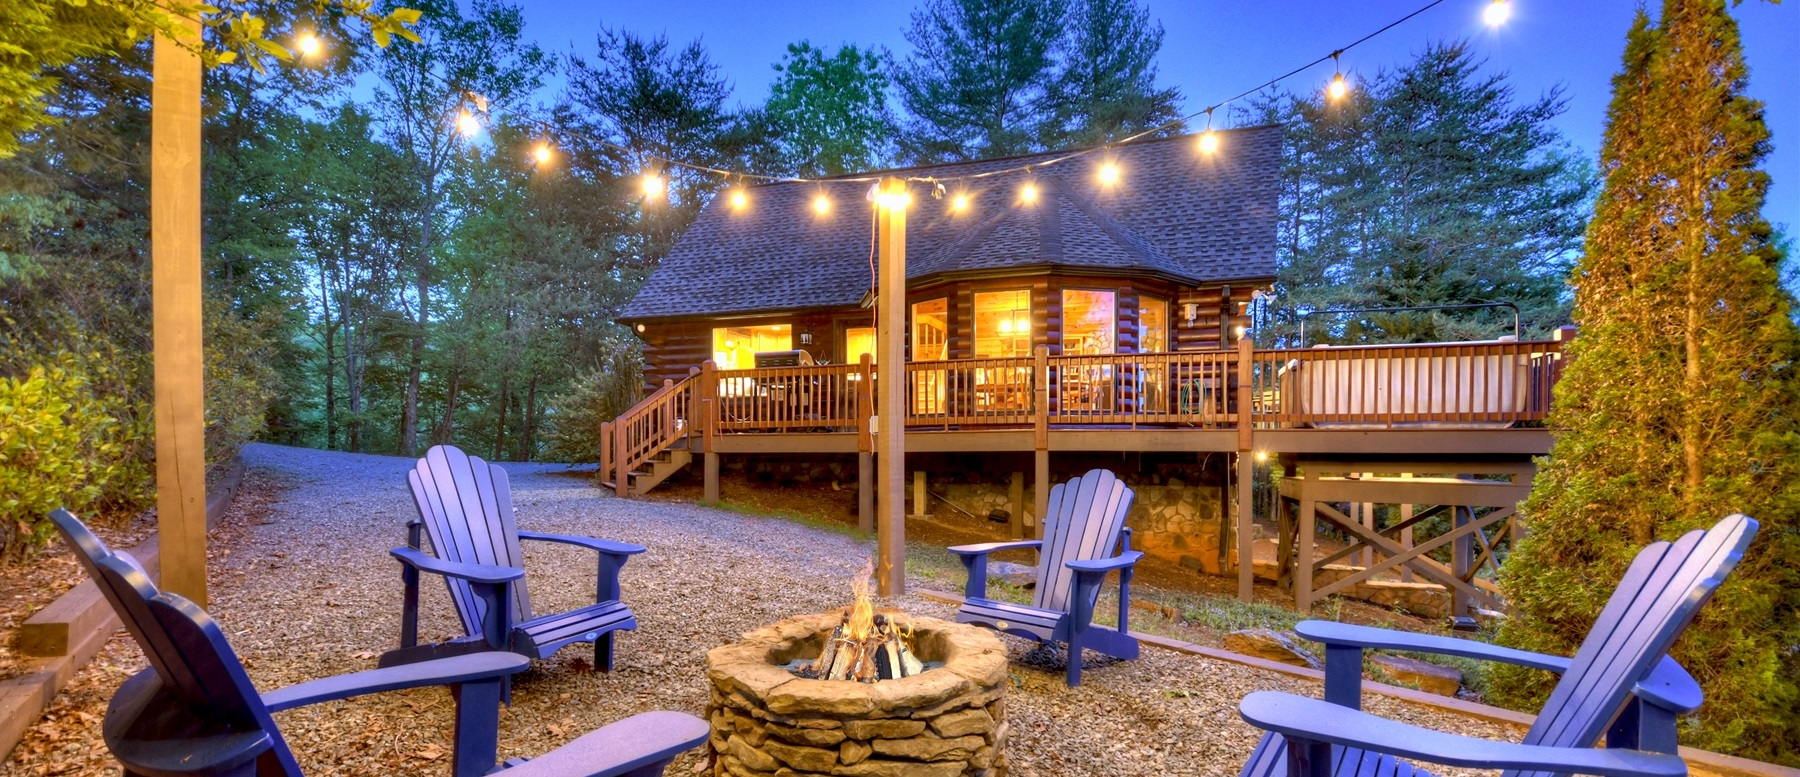 mountain vacation nest cabin nc cabins ridge rentals mountains overlook at blue eagles